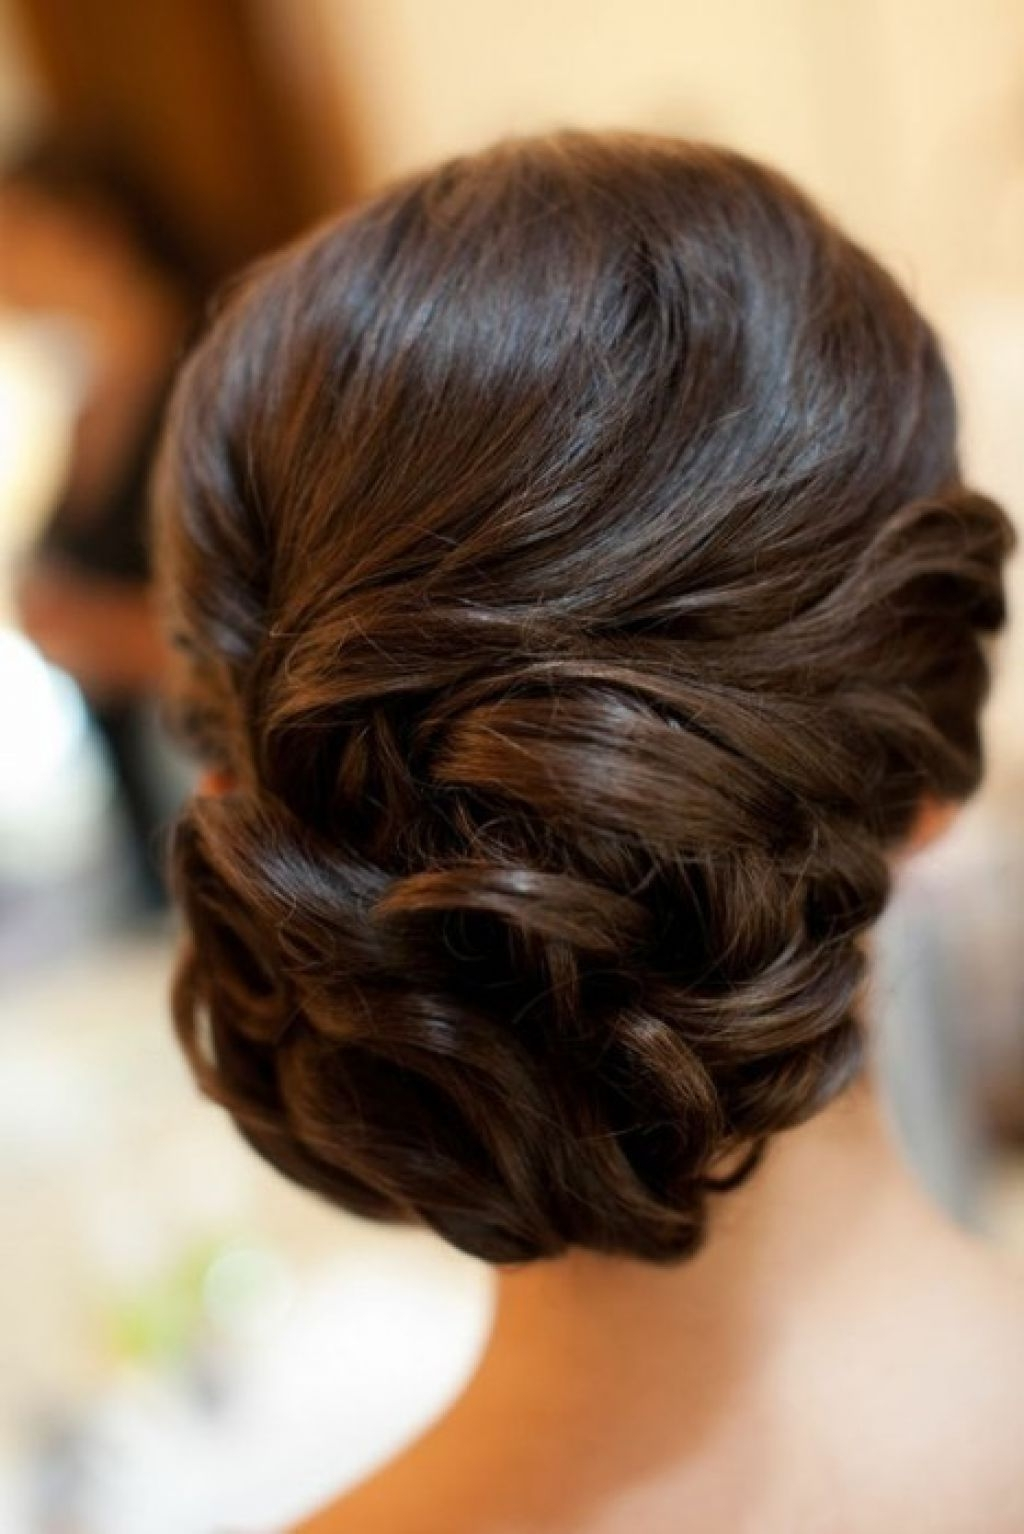 Wedding Hairstyles Ideas: Curly Low Updo Wedding Guest Hairstyles Within Pretty Updo Hairstyles For Long Hair (View 15 of 15)